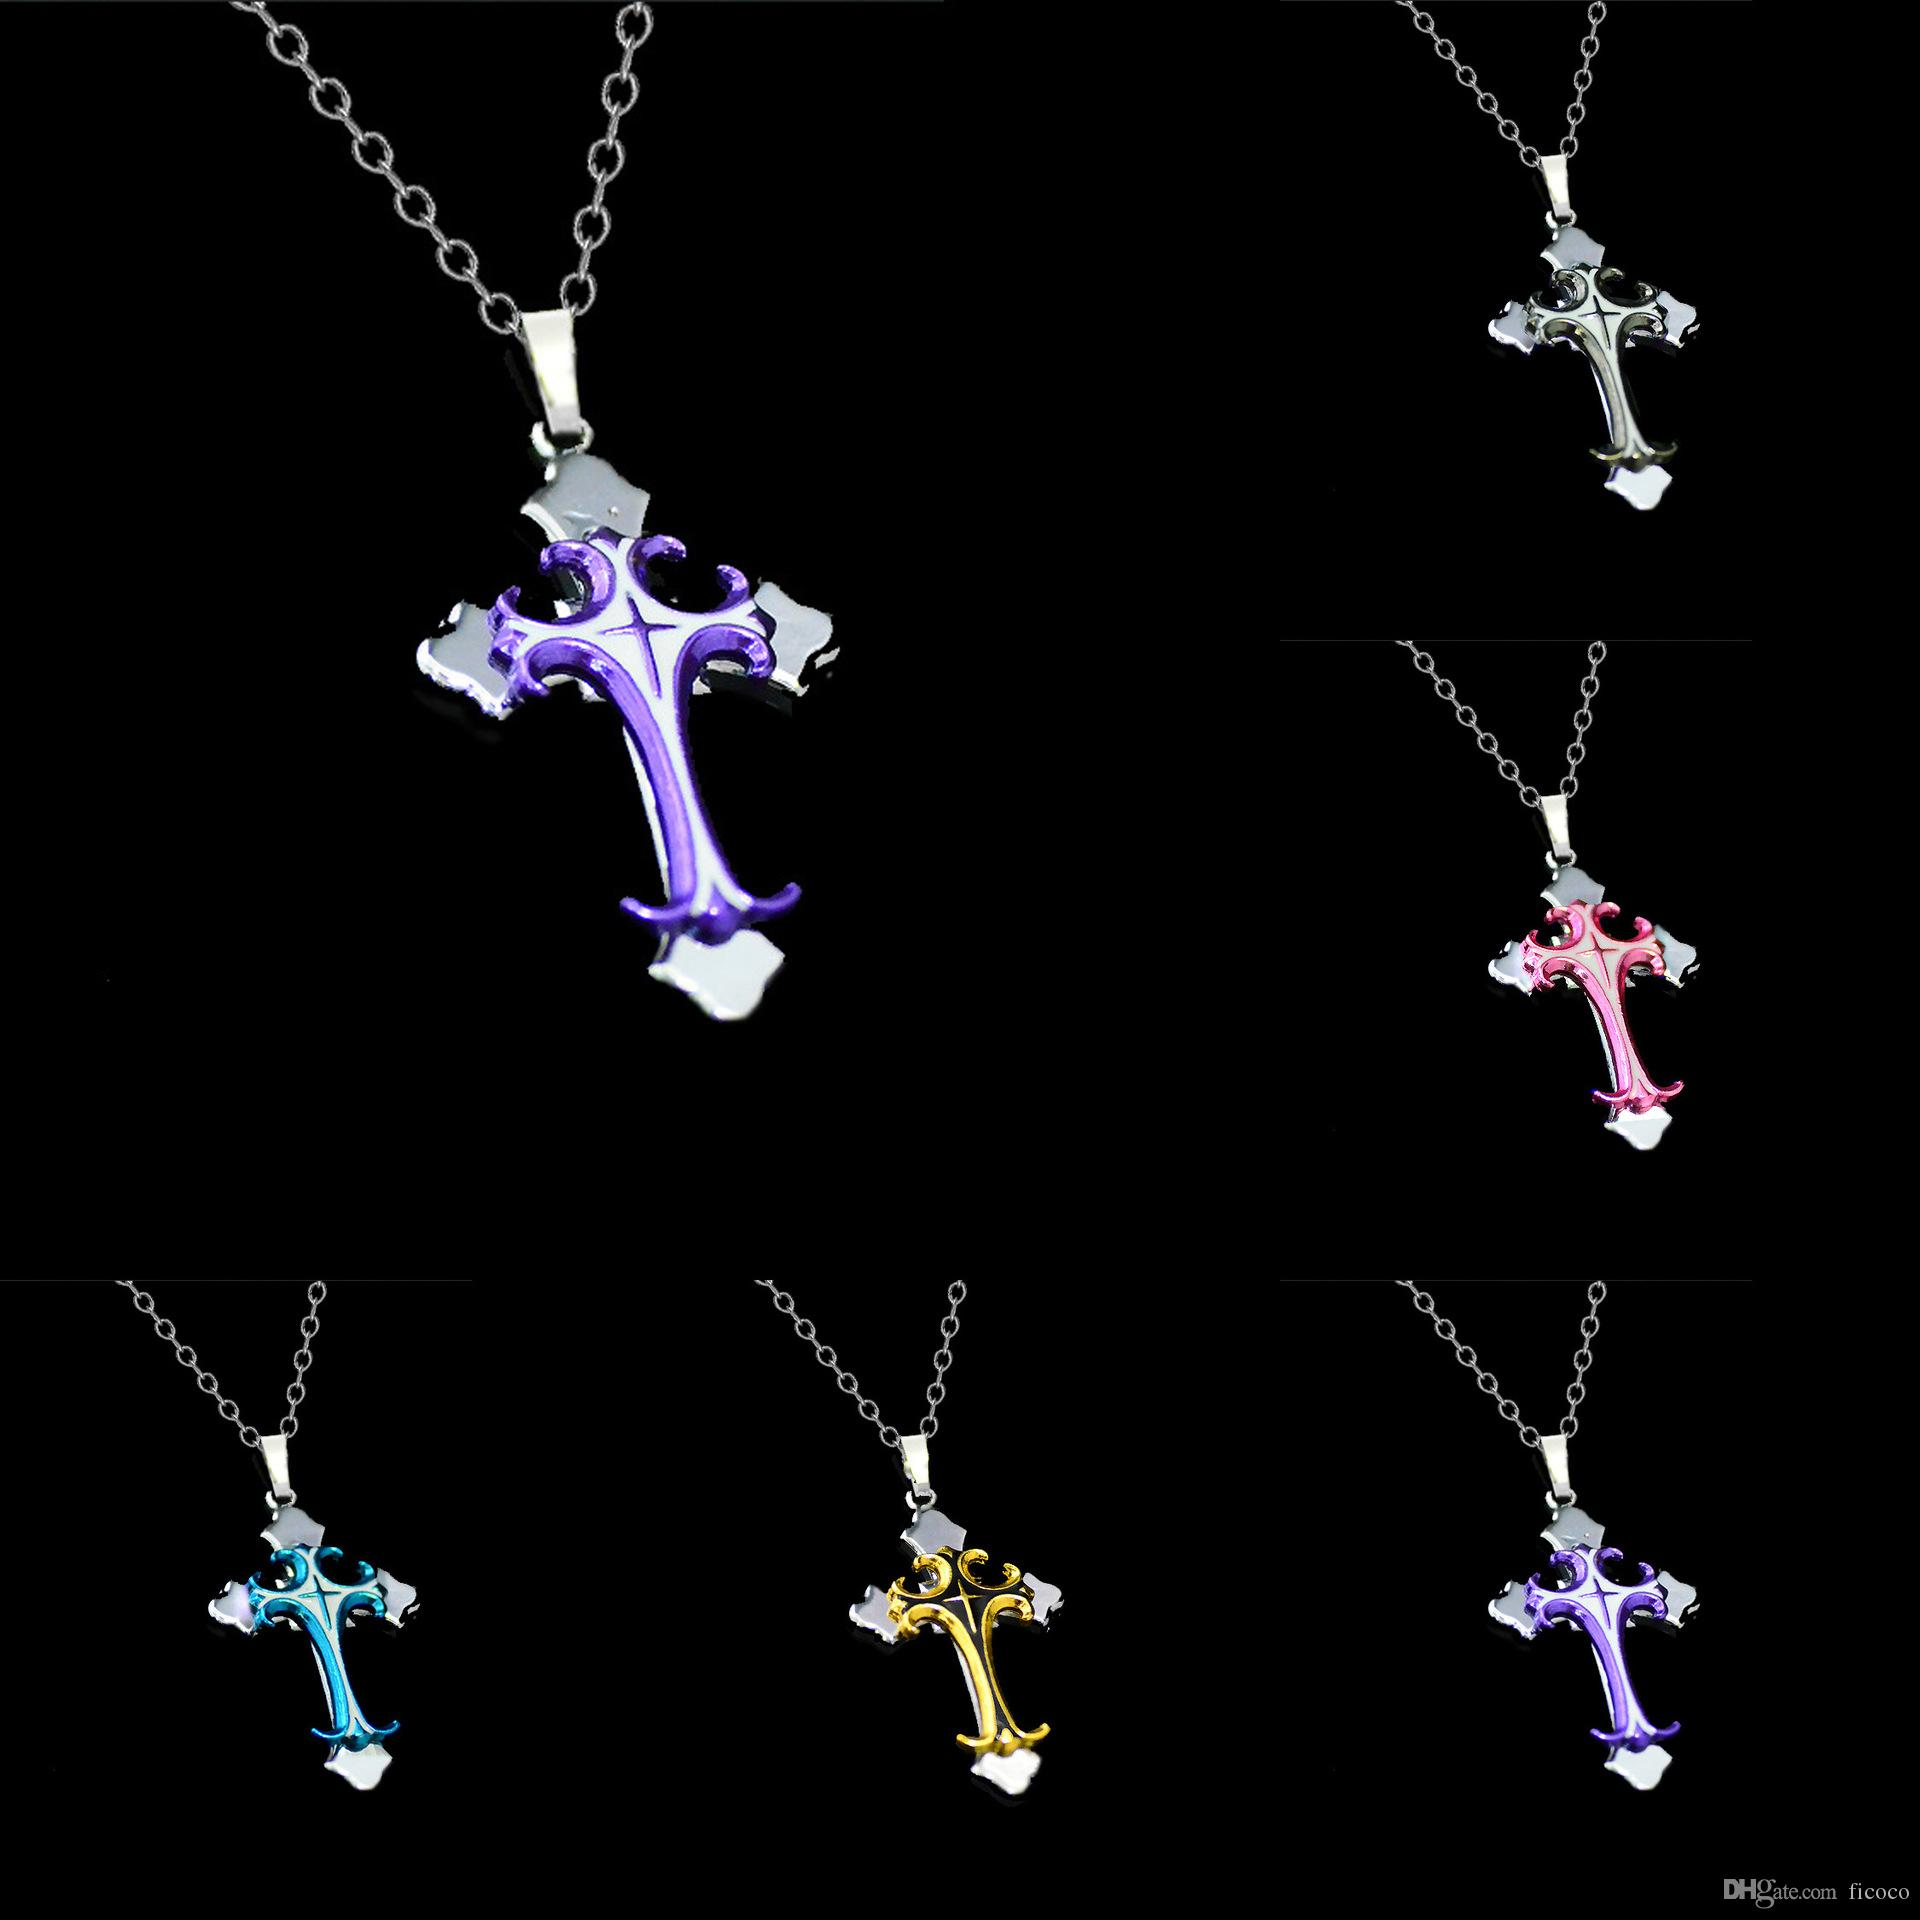 Wholesale satin antique cross pendants necklaces familial affection wholesale satin antique cross pendants necklaces familial affection chockers jewelry with 50cm chain as gifts jewelry design gold charms from ficoco aloadofball Image collections